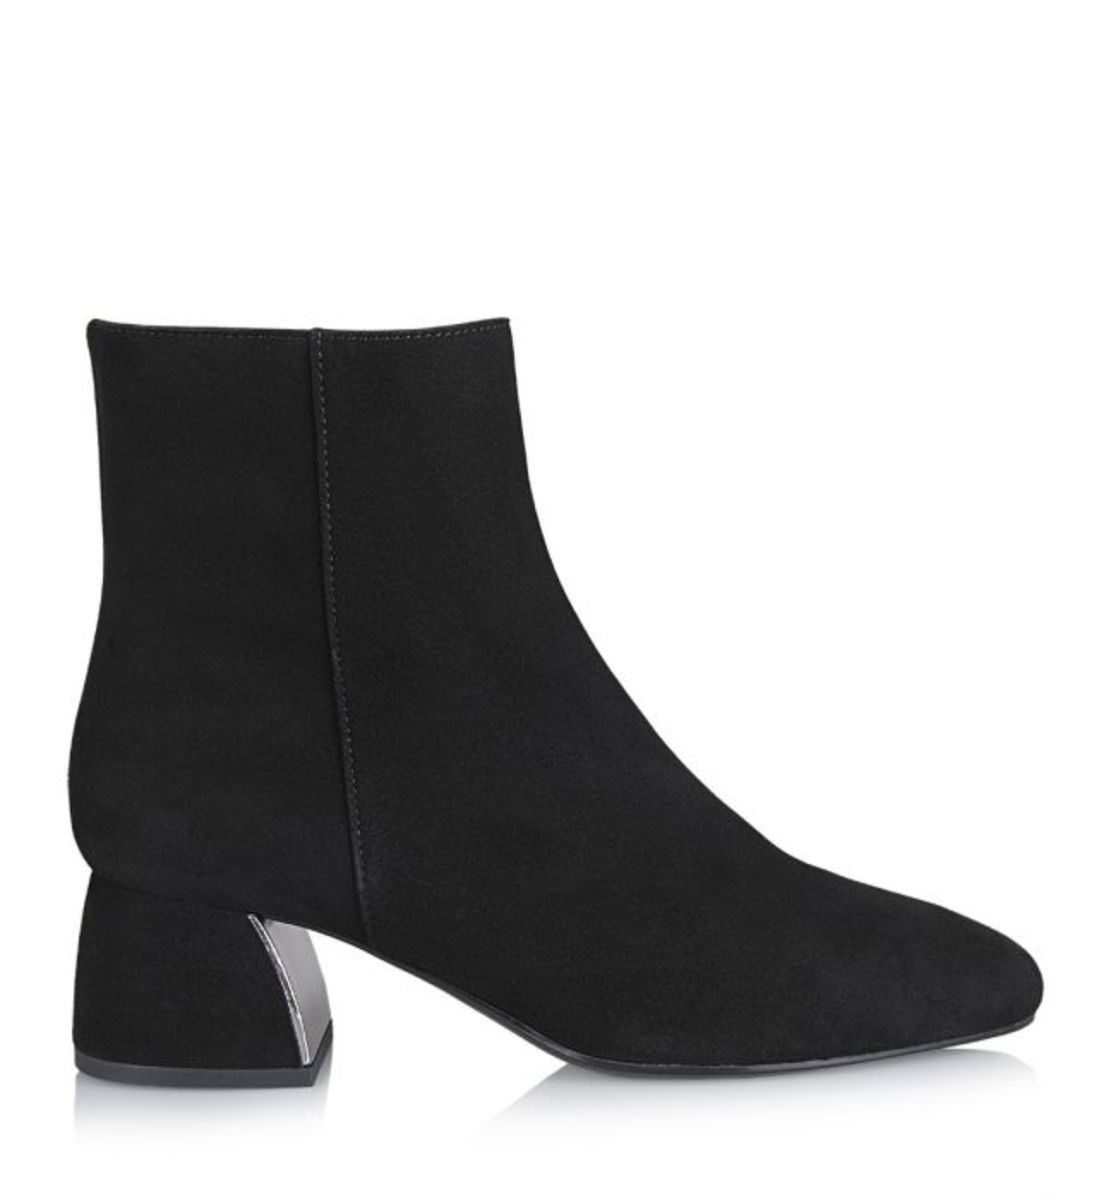 Beeza boot, $395, available at La Canadienne.